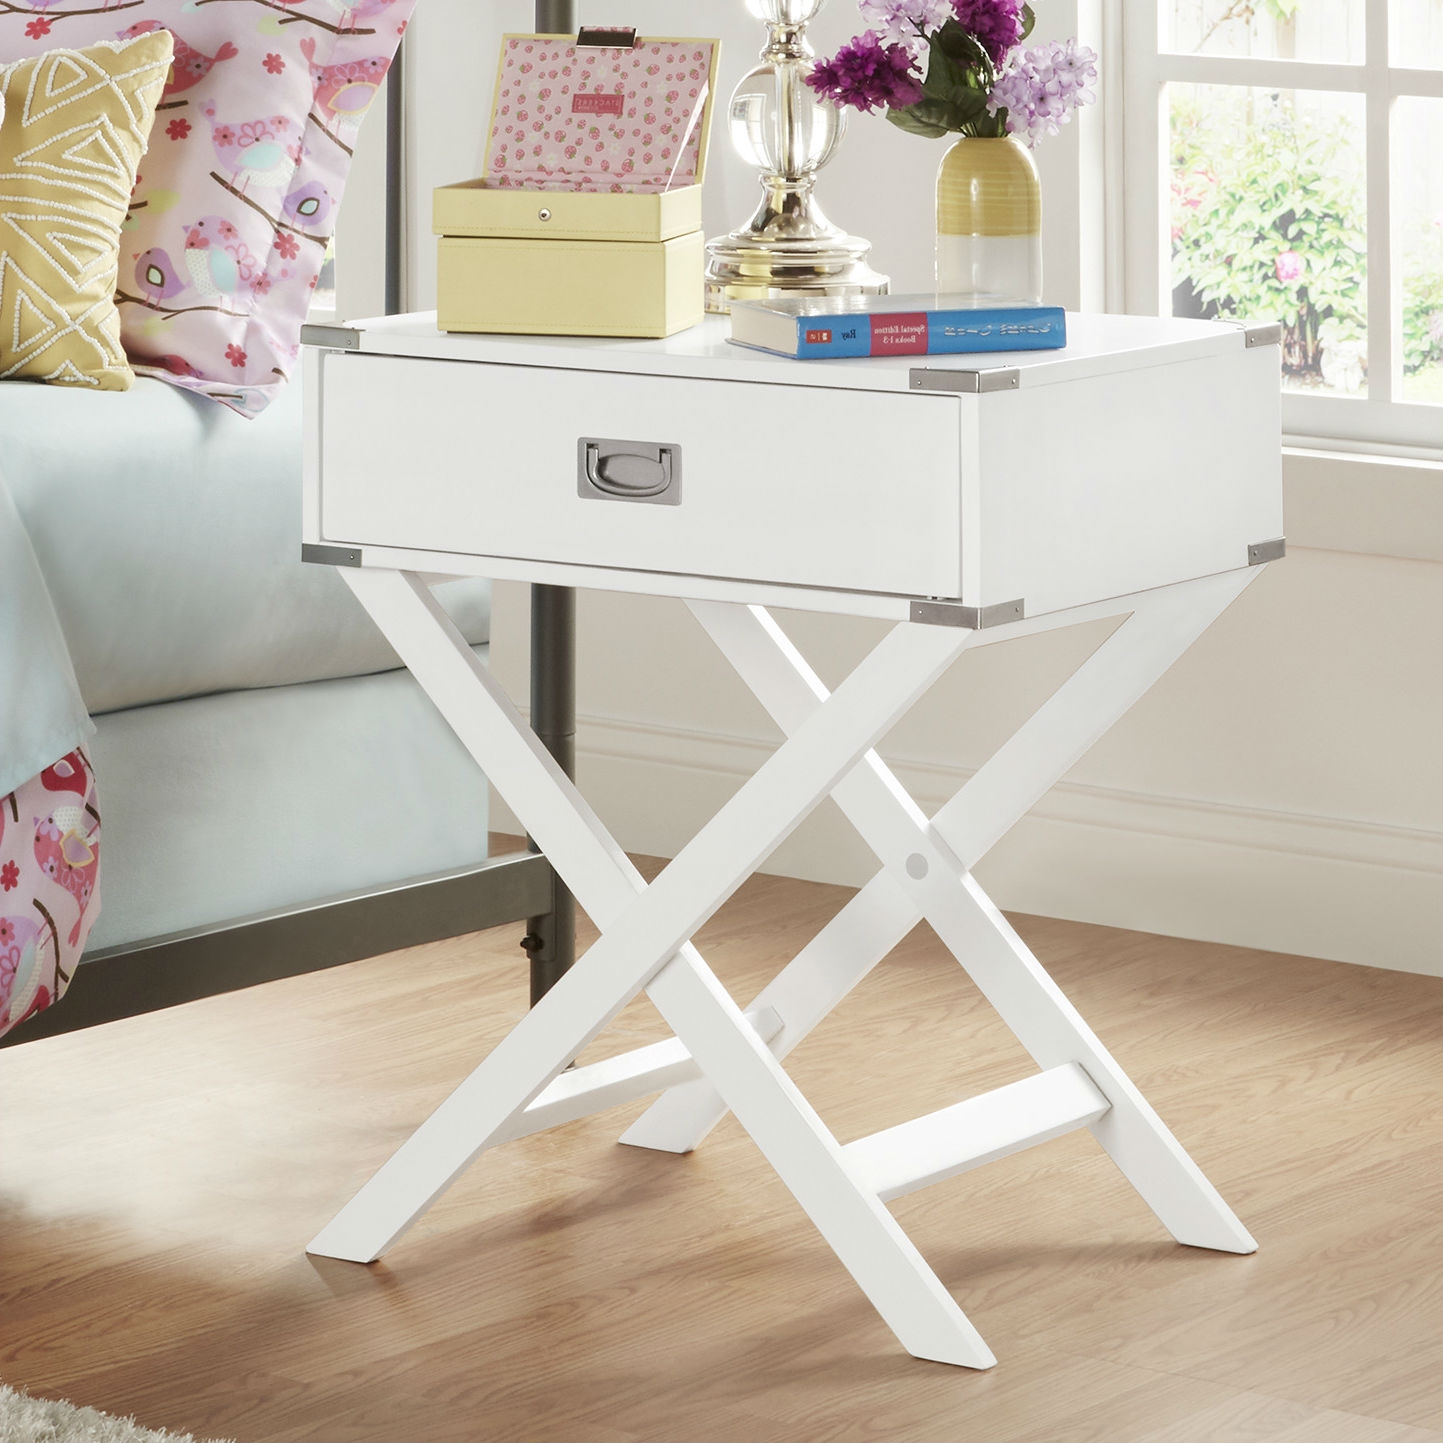 White Modern Bedroom Decor 1-Drawer Bedside Table Nightstand End Table